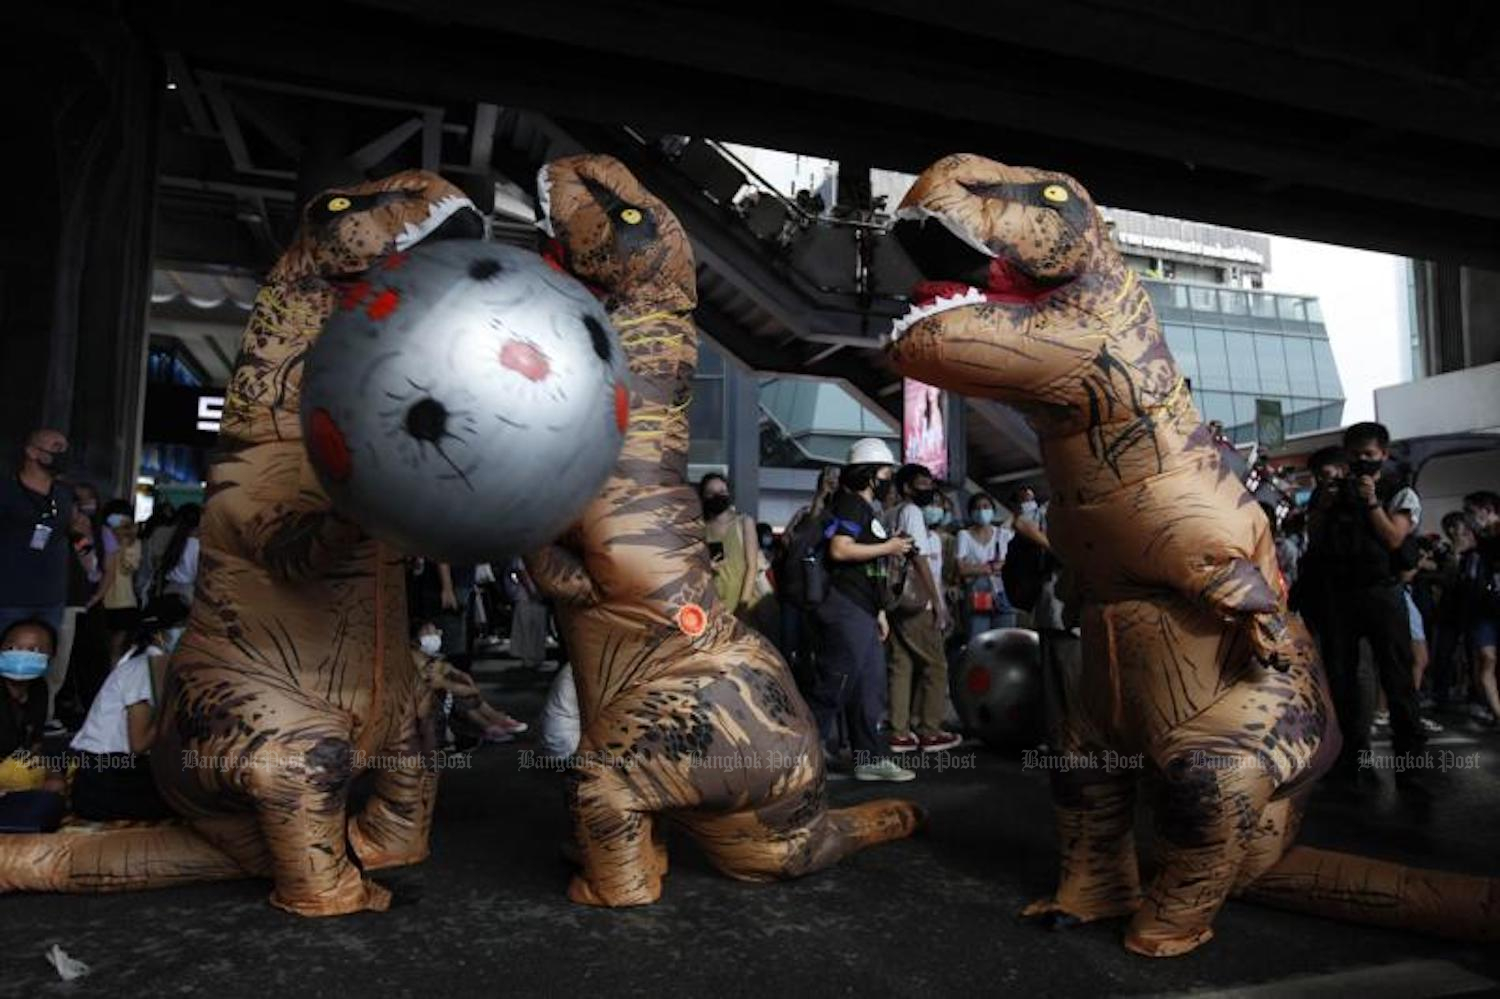 Protesters wearing dinosaur costumes try to flee from an approaching inflatable asteroid at the Bad Student rally at the Siam BTS station on Saturday. (Photo: Wichan Charoenkiatpakul)